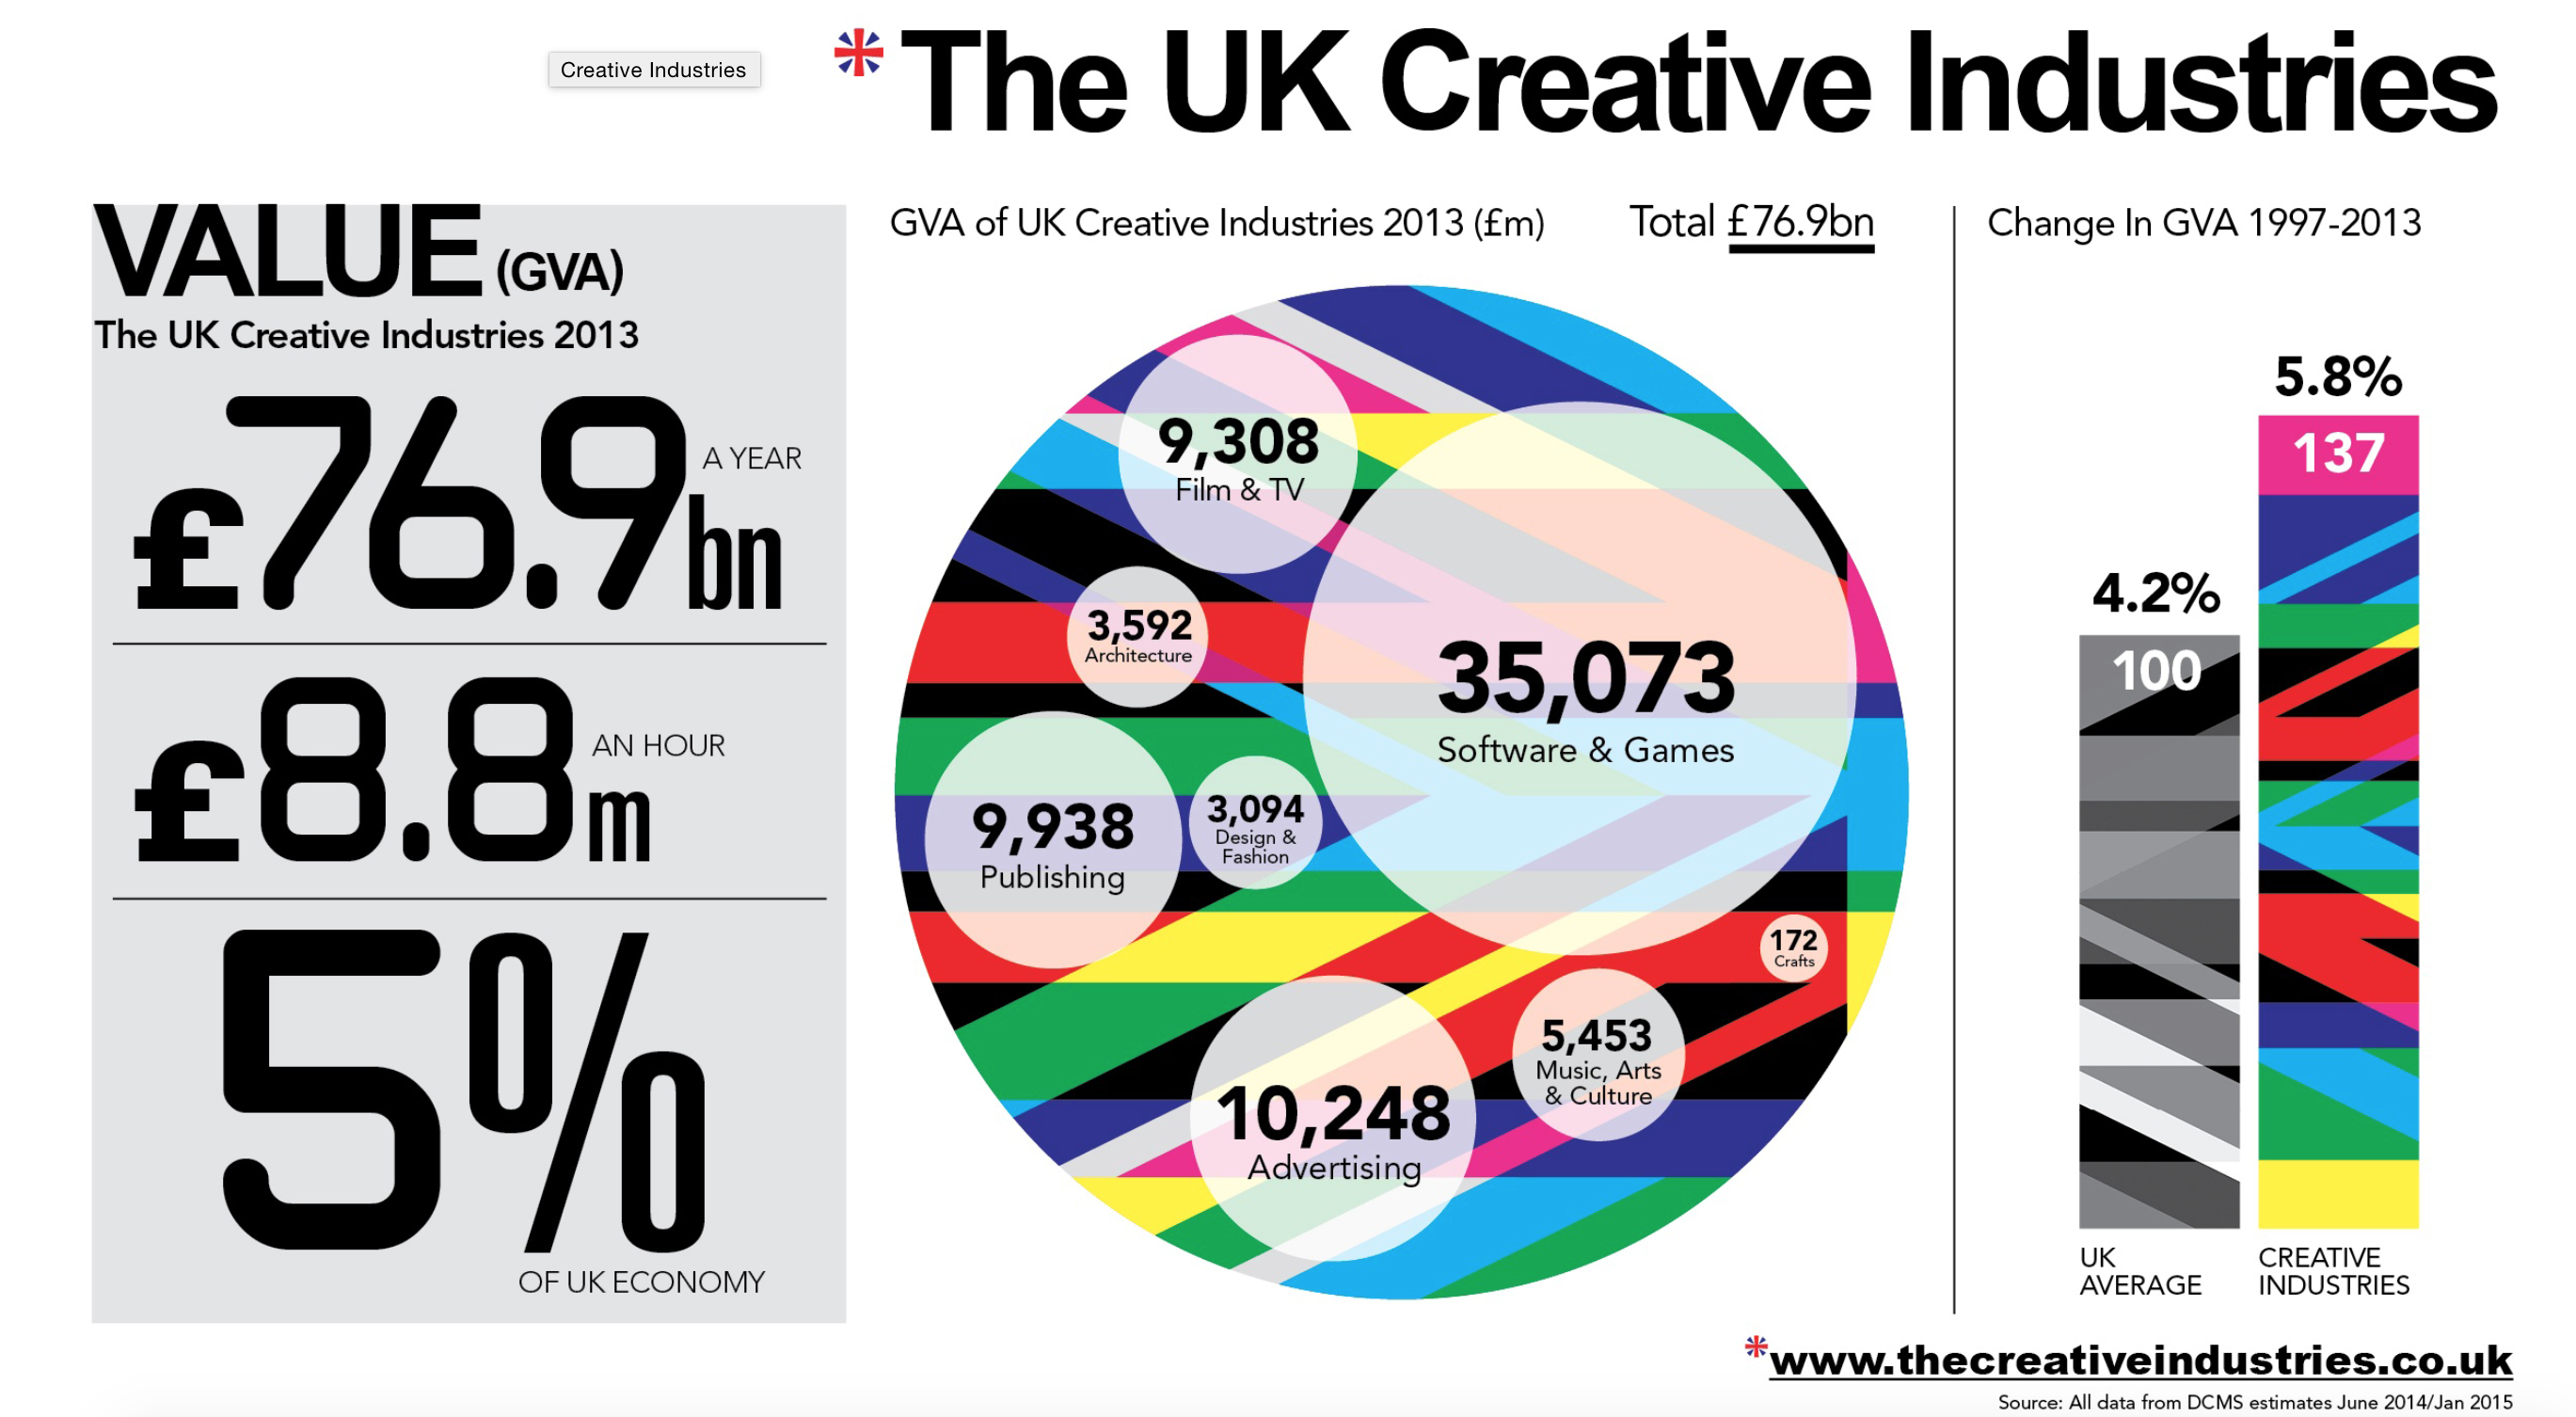 The Value of the UK Creative Industries